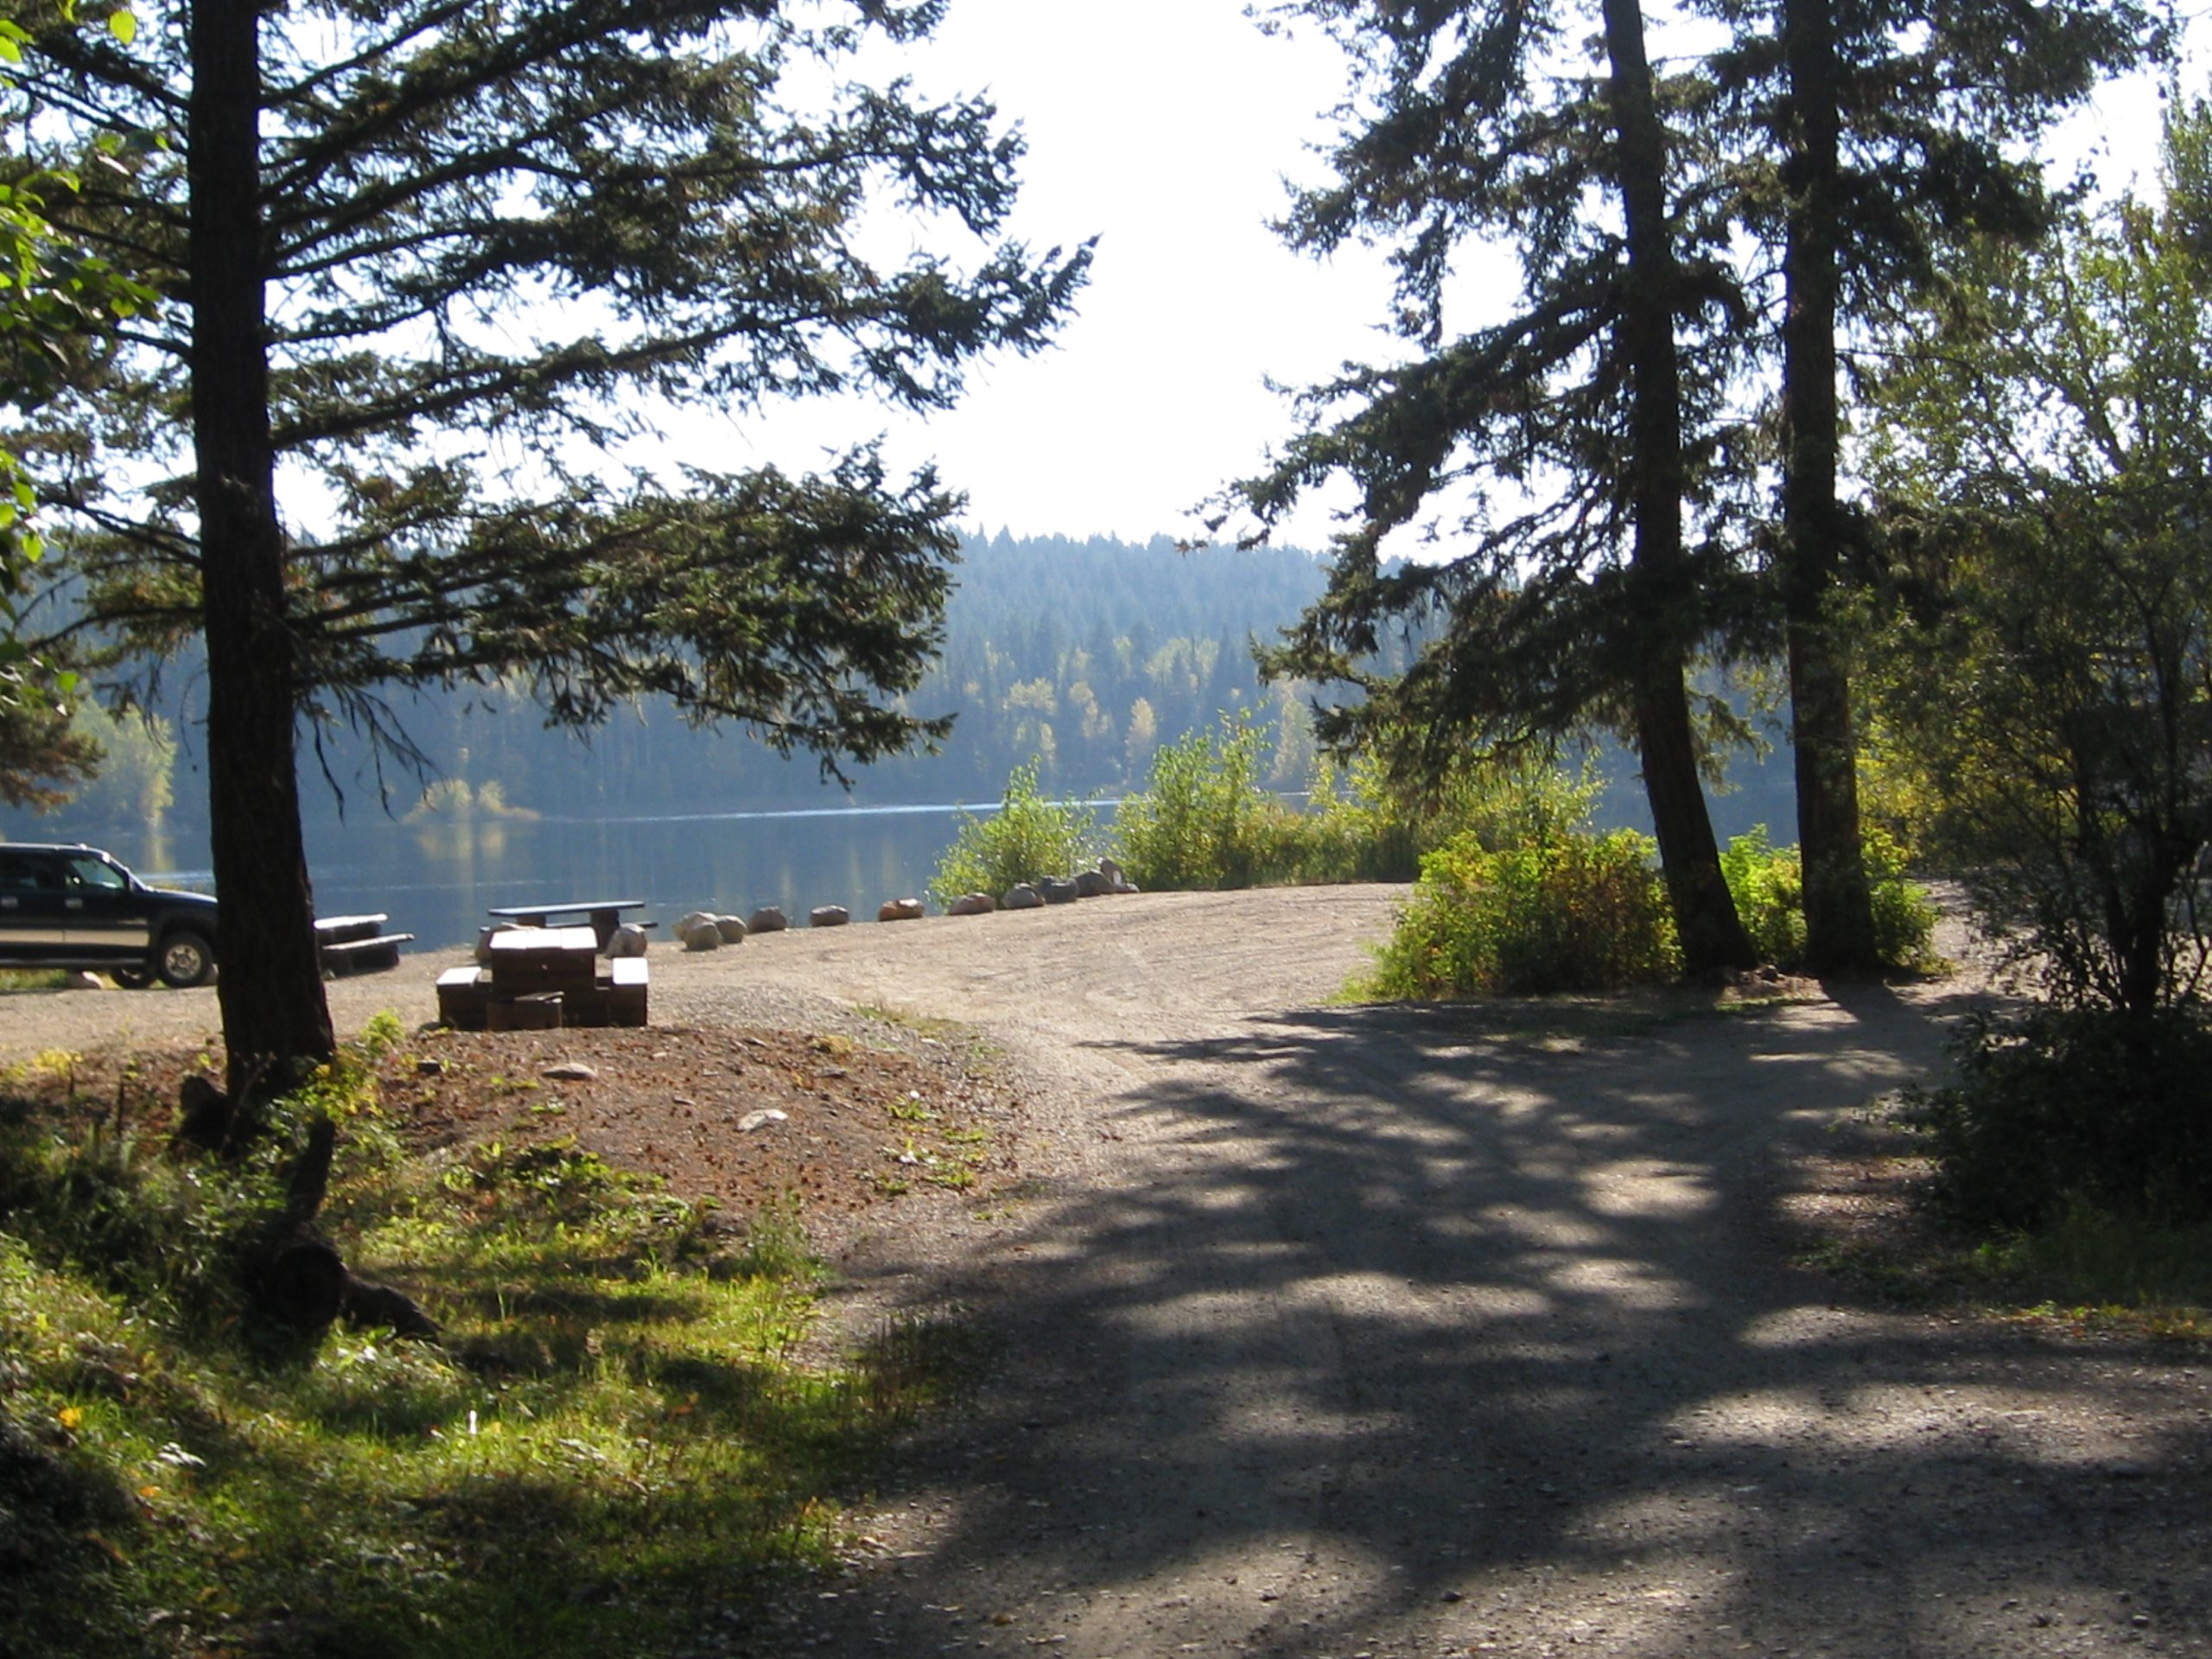 Improvements for Isobel Lake Trail system have boosted accessiblity